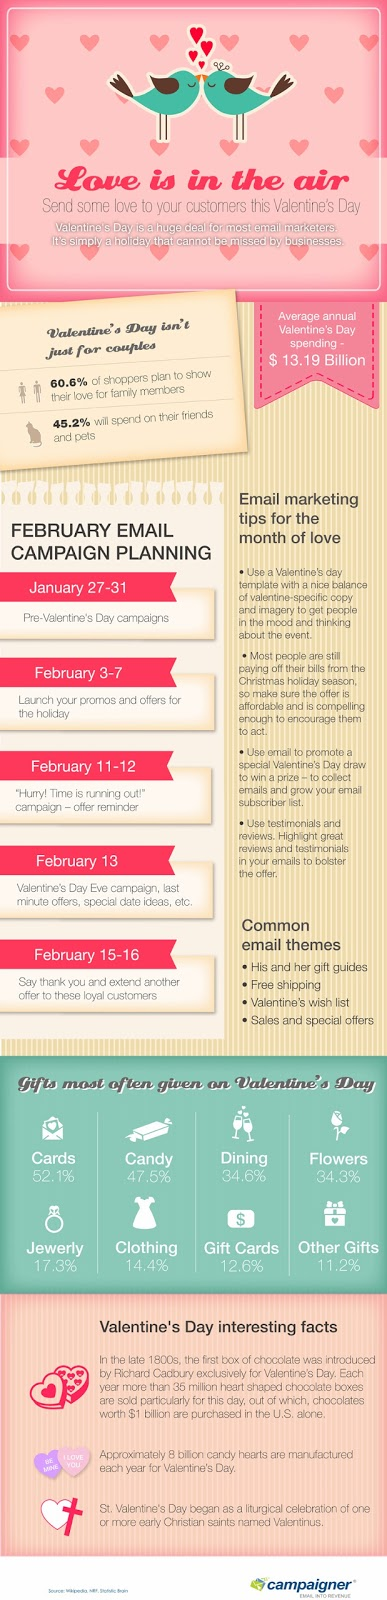 Campaigner Email Marketing, Email Campaign Planning, Valentine's Day